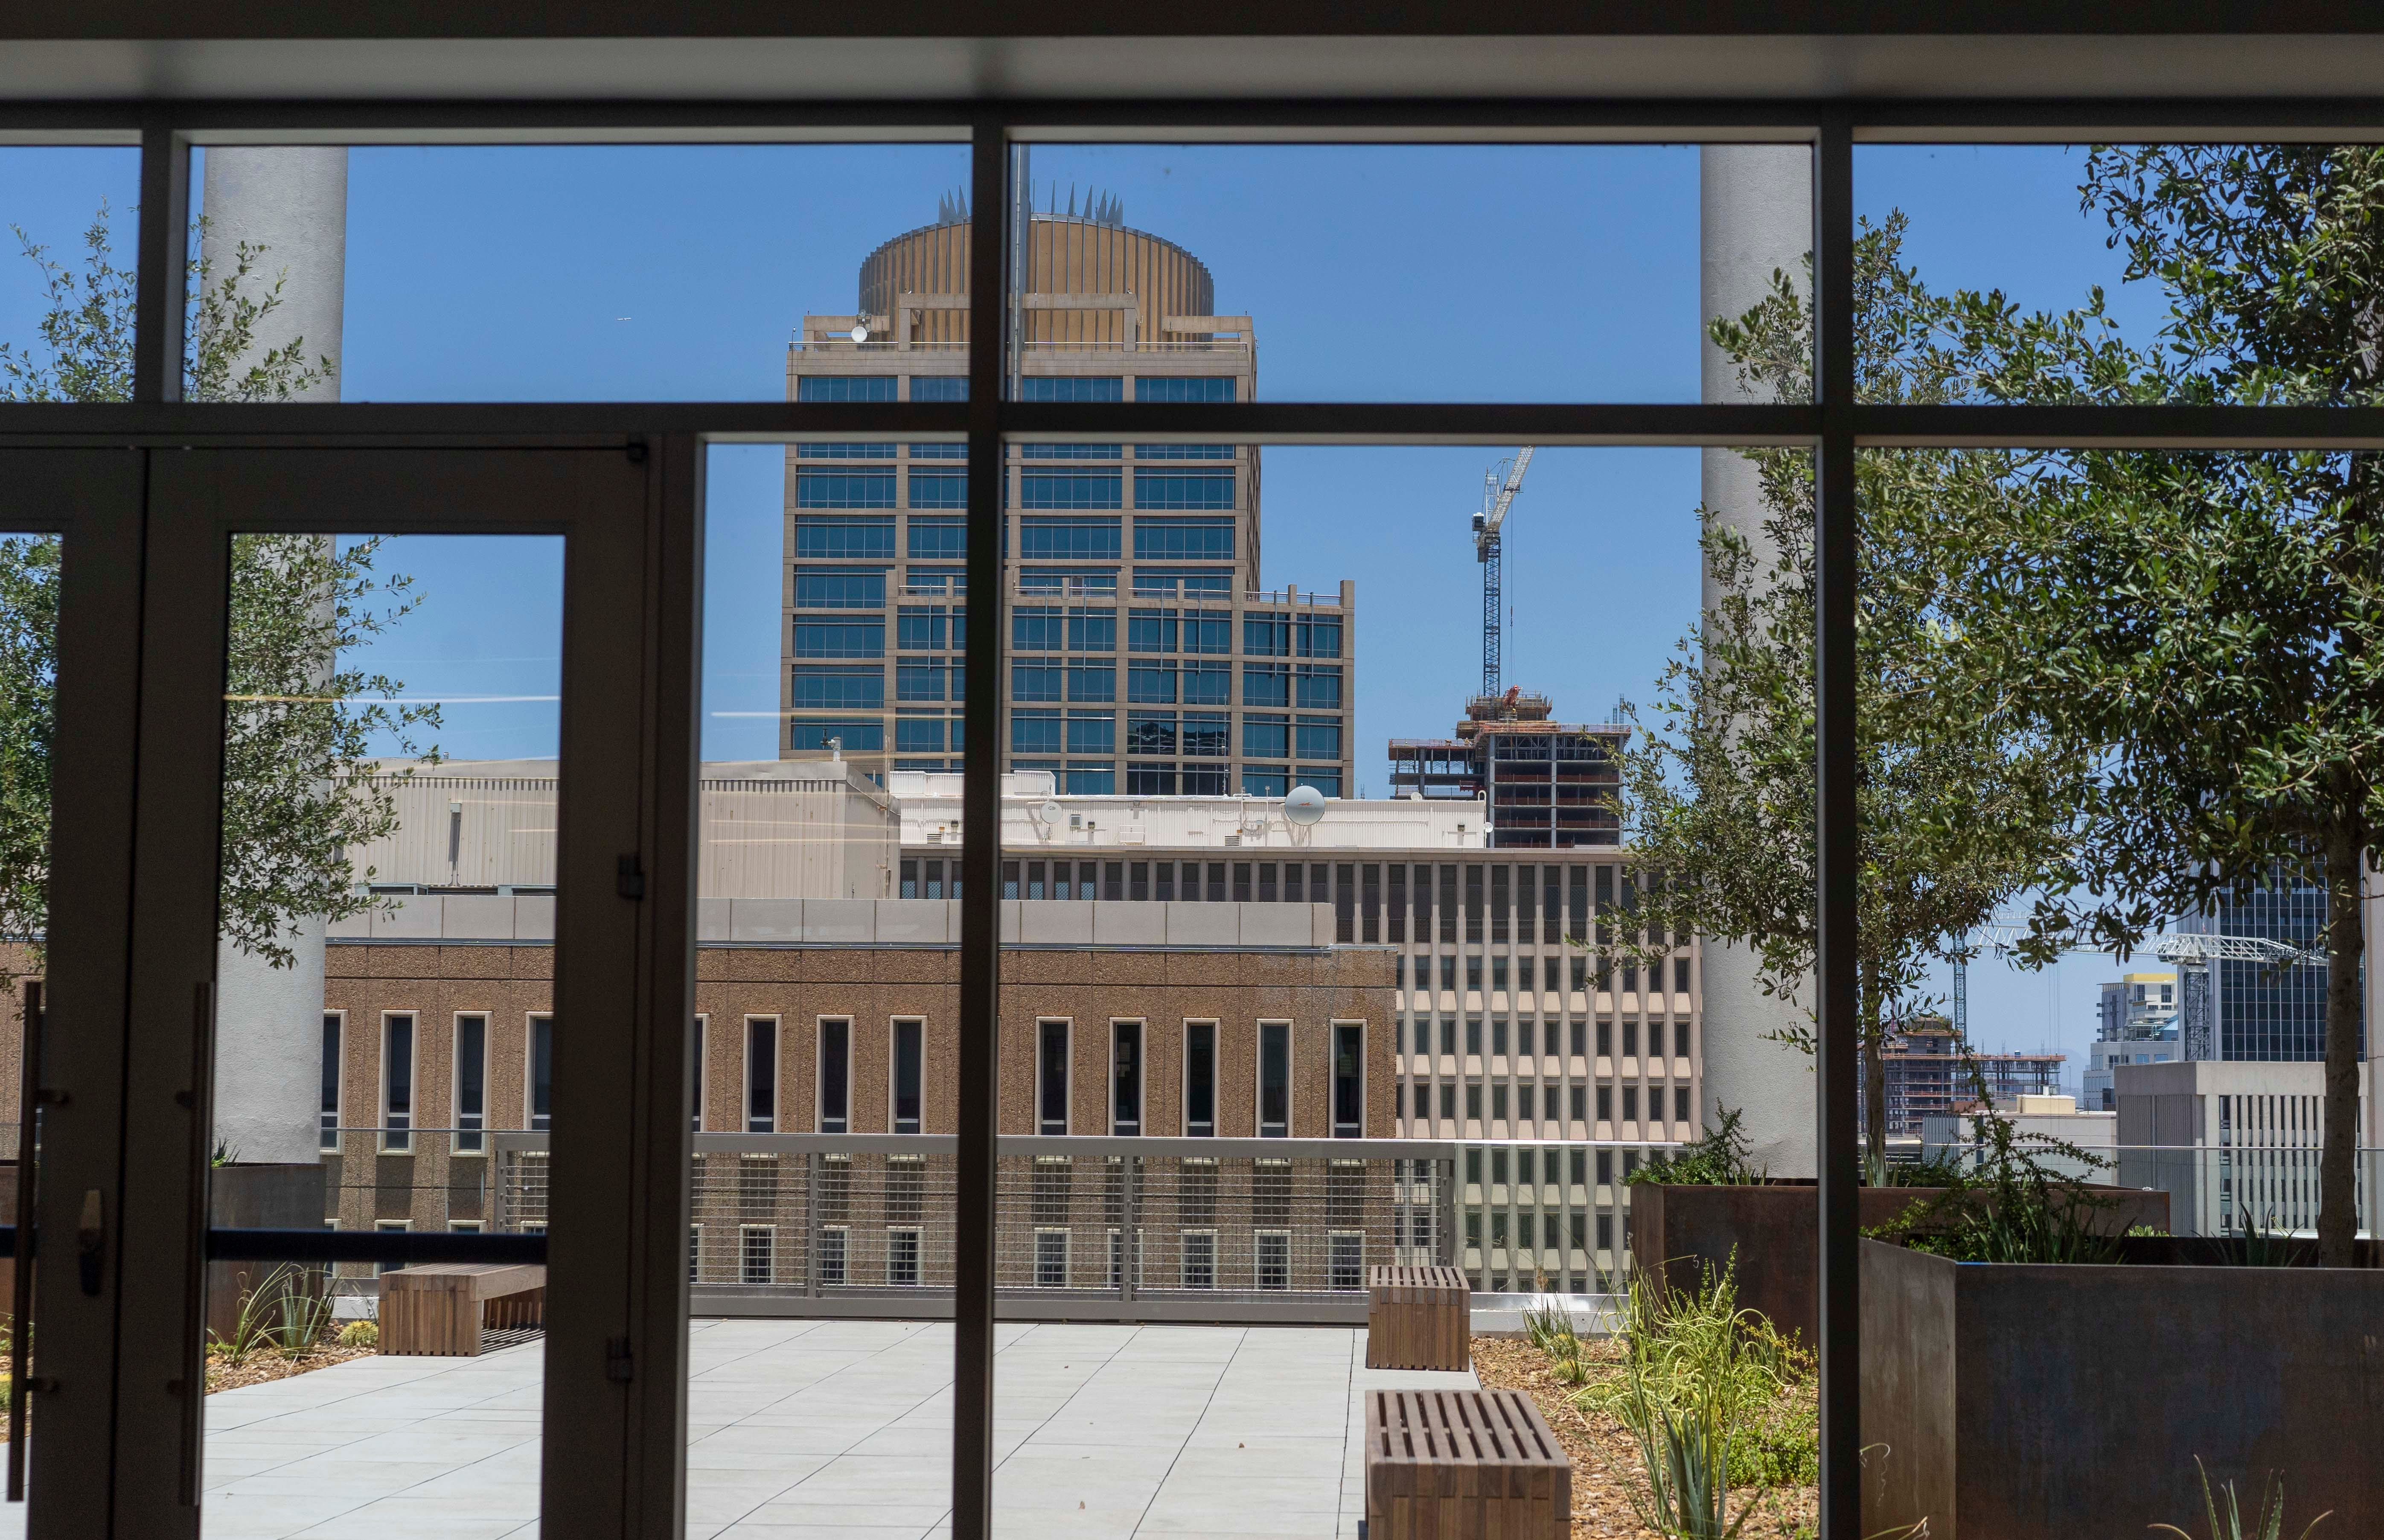 Maricopa County turns jail into office for county attorney